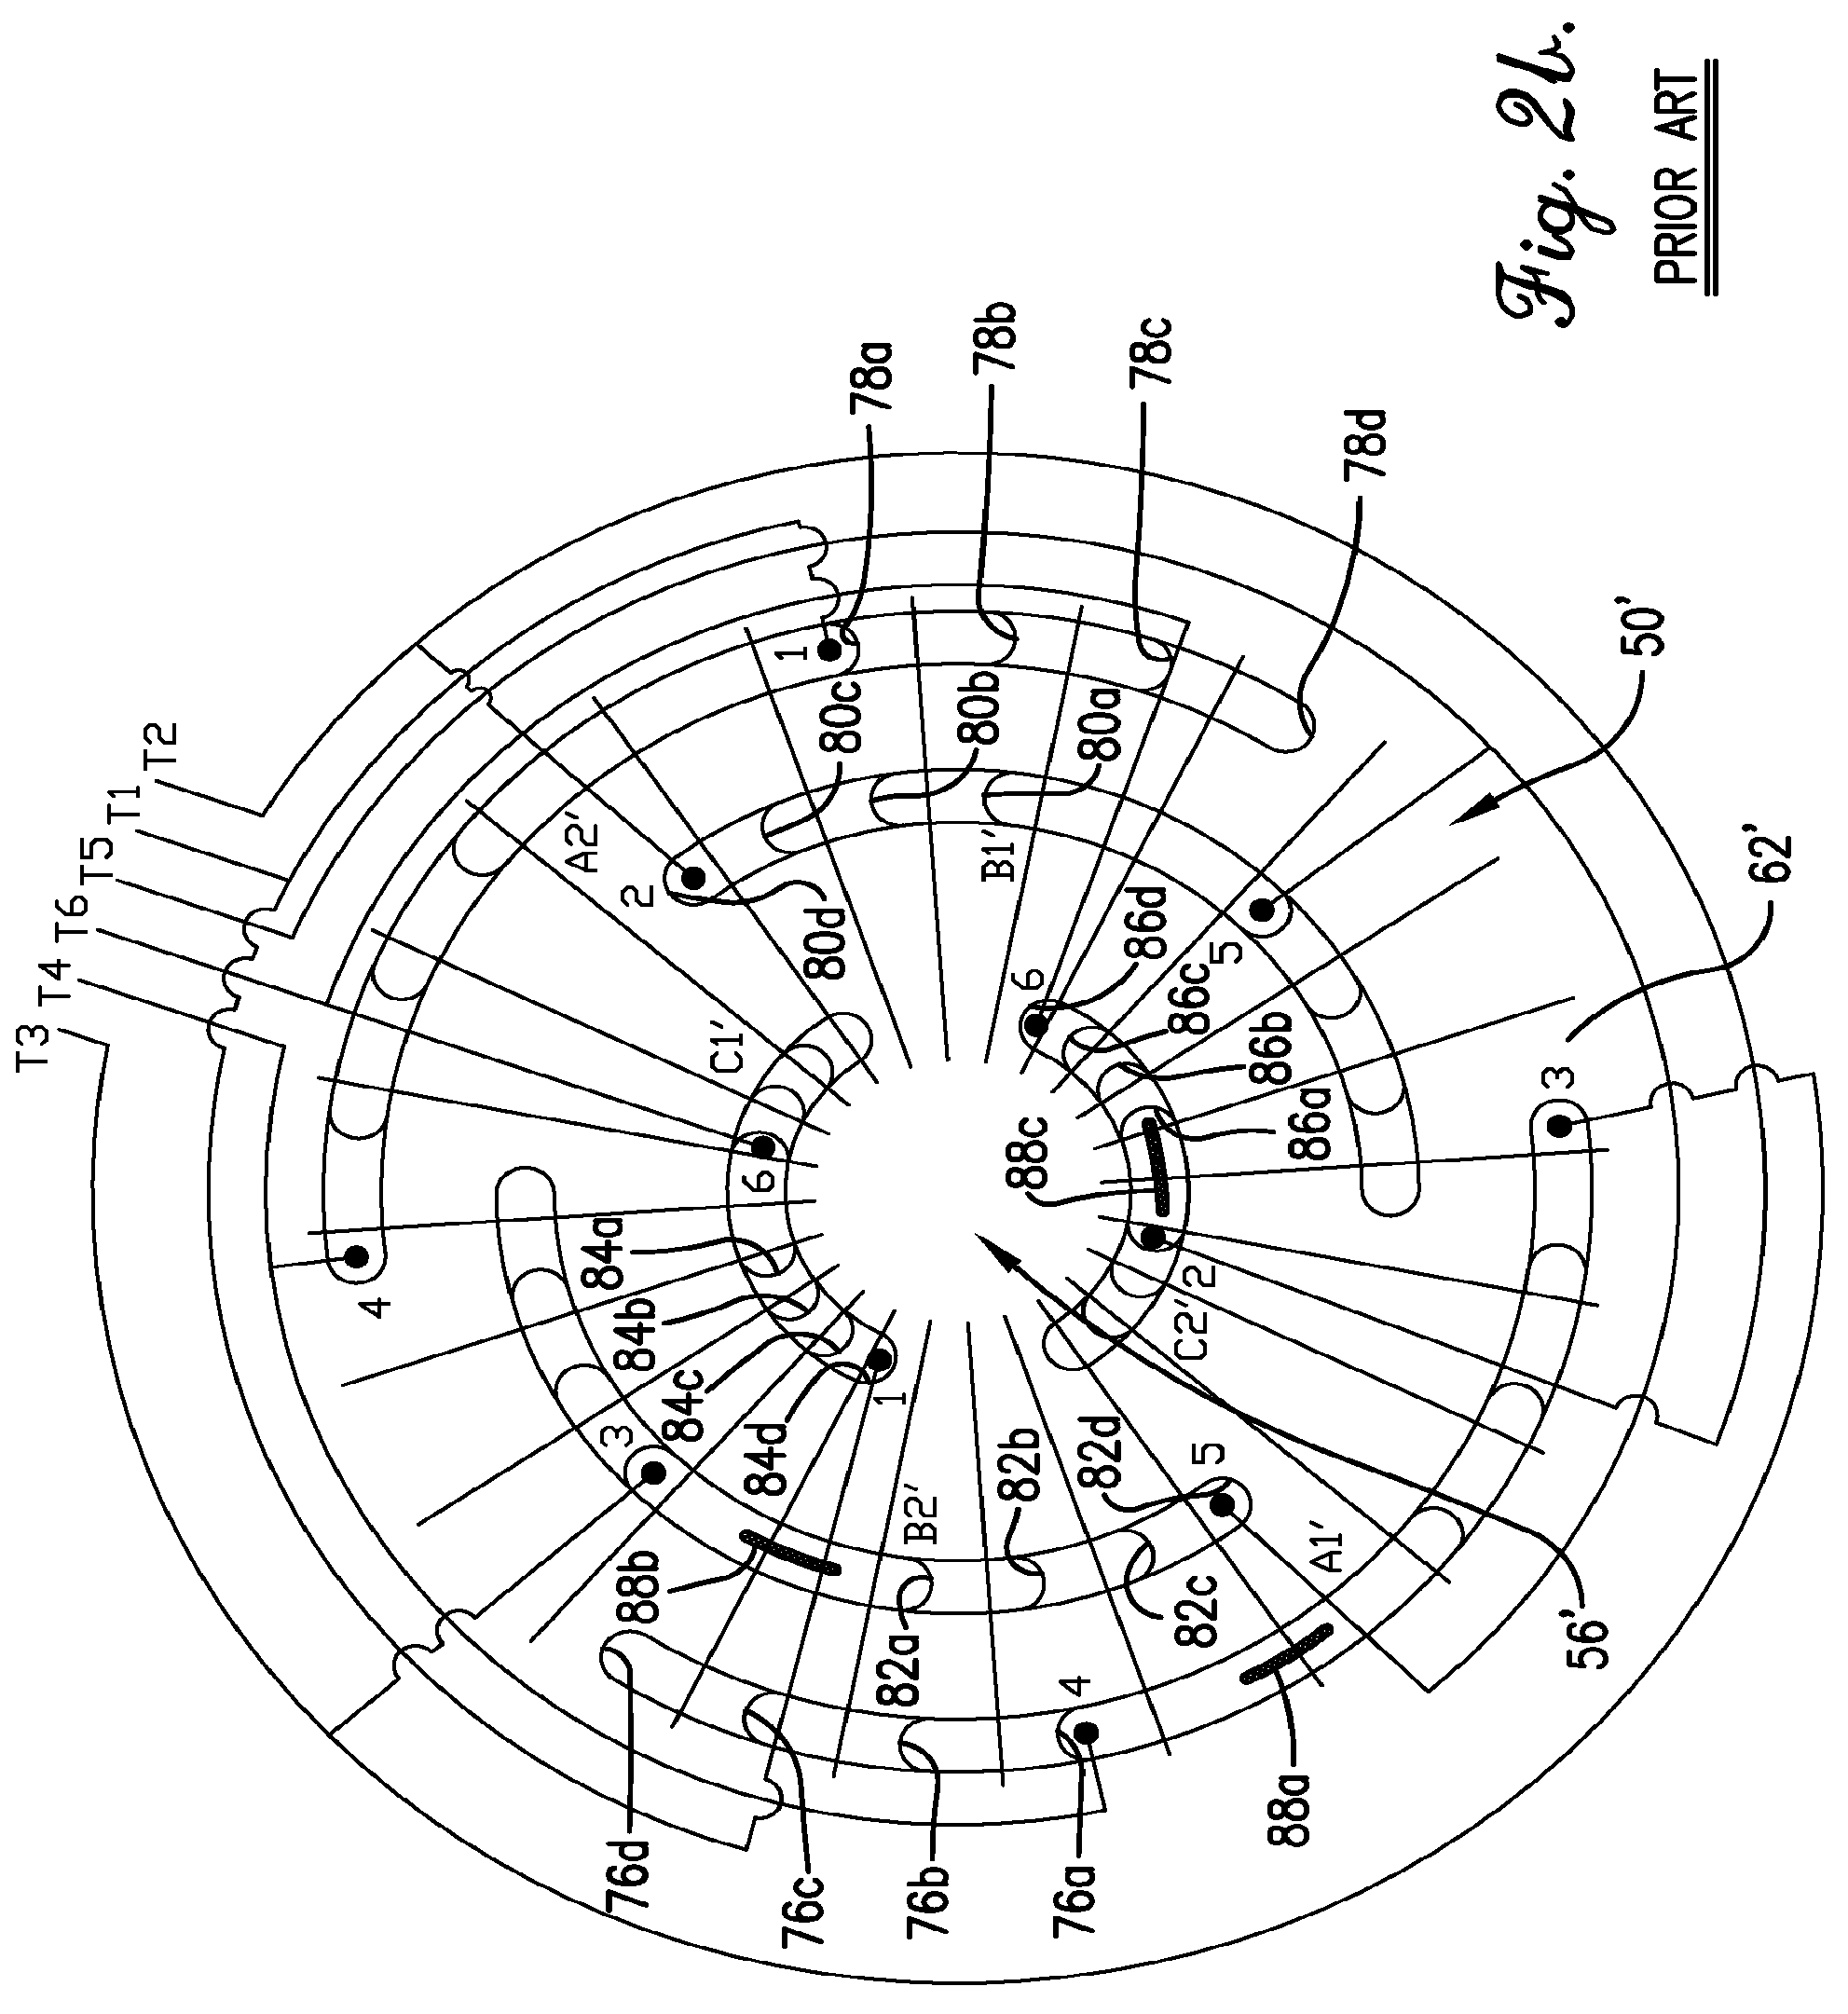 US8564167 on induction motor wiring diagram